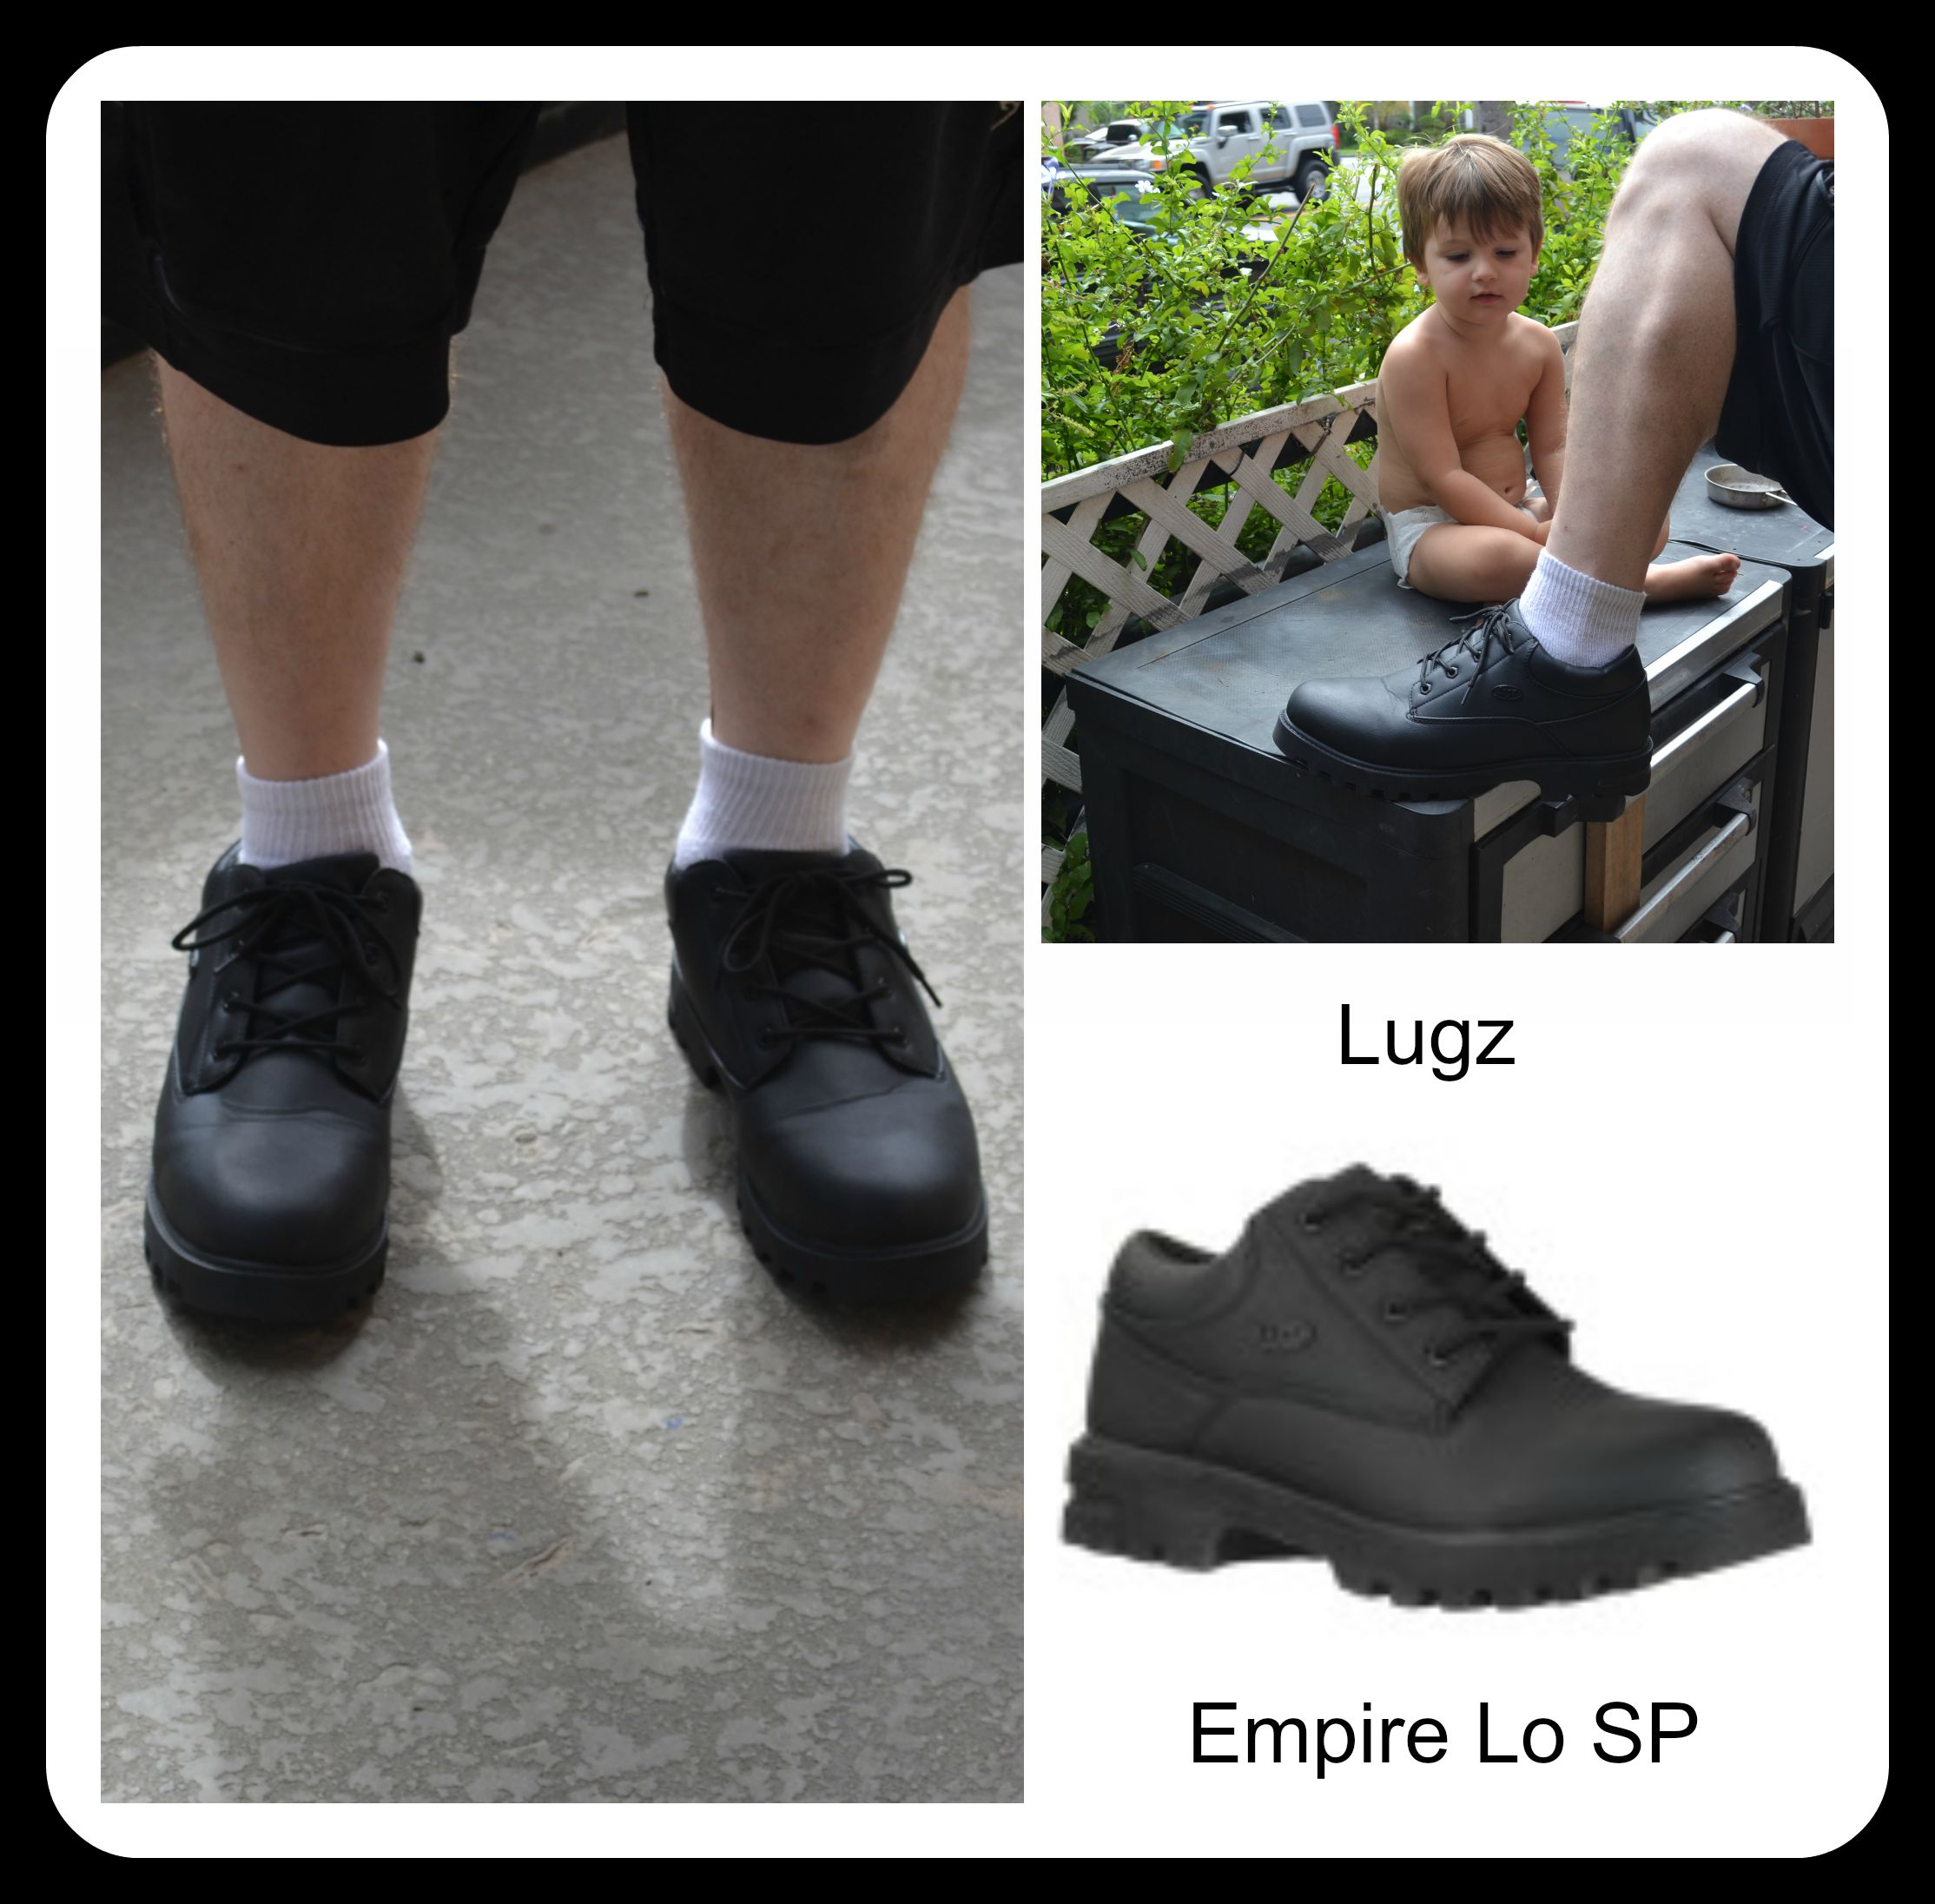 8d50c1789e68 Lugz Empire Lo SP Shoes Review And Giveaway - Mom s Six Little Monkeys